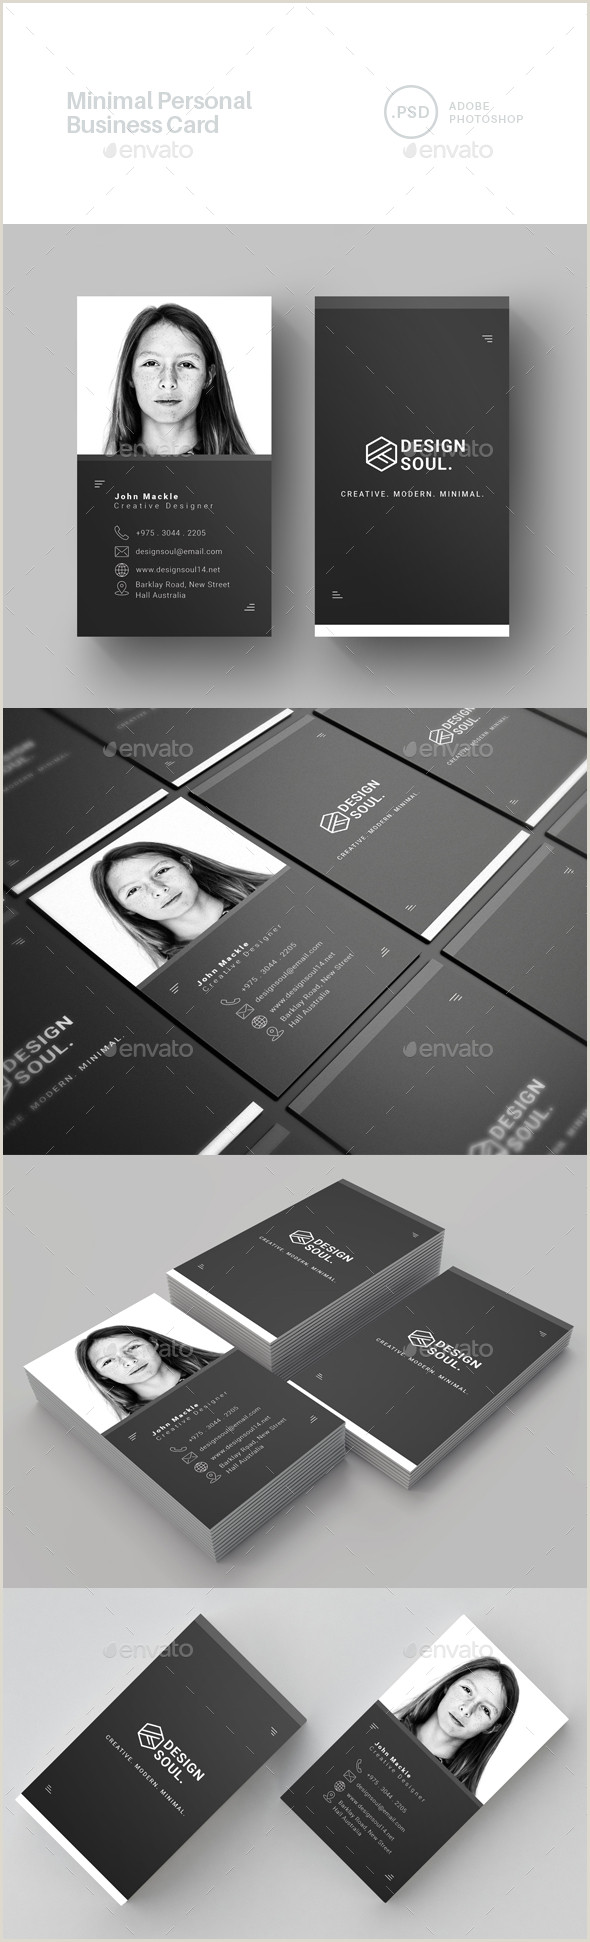 Personal Business Cards Sample Personal Business Card Templates & Designs From Graphicriver